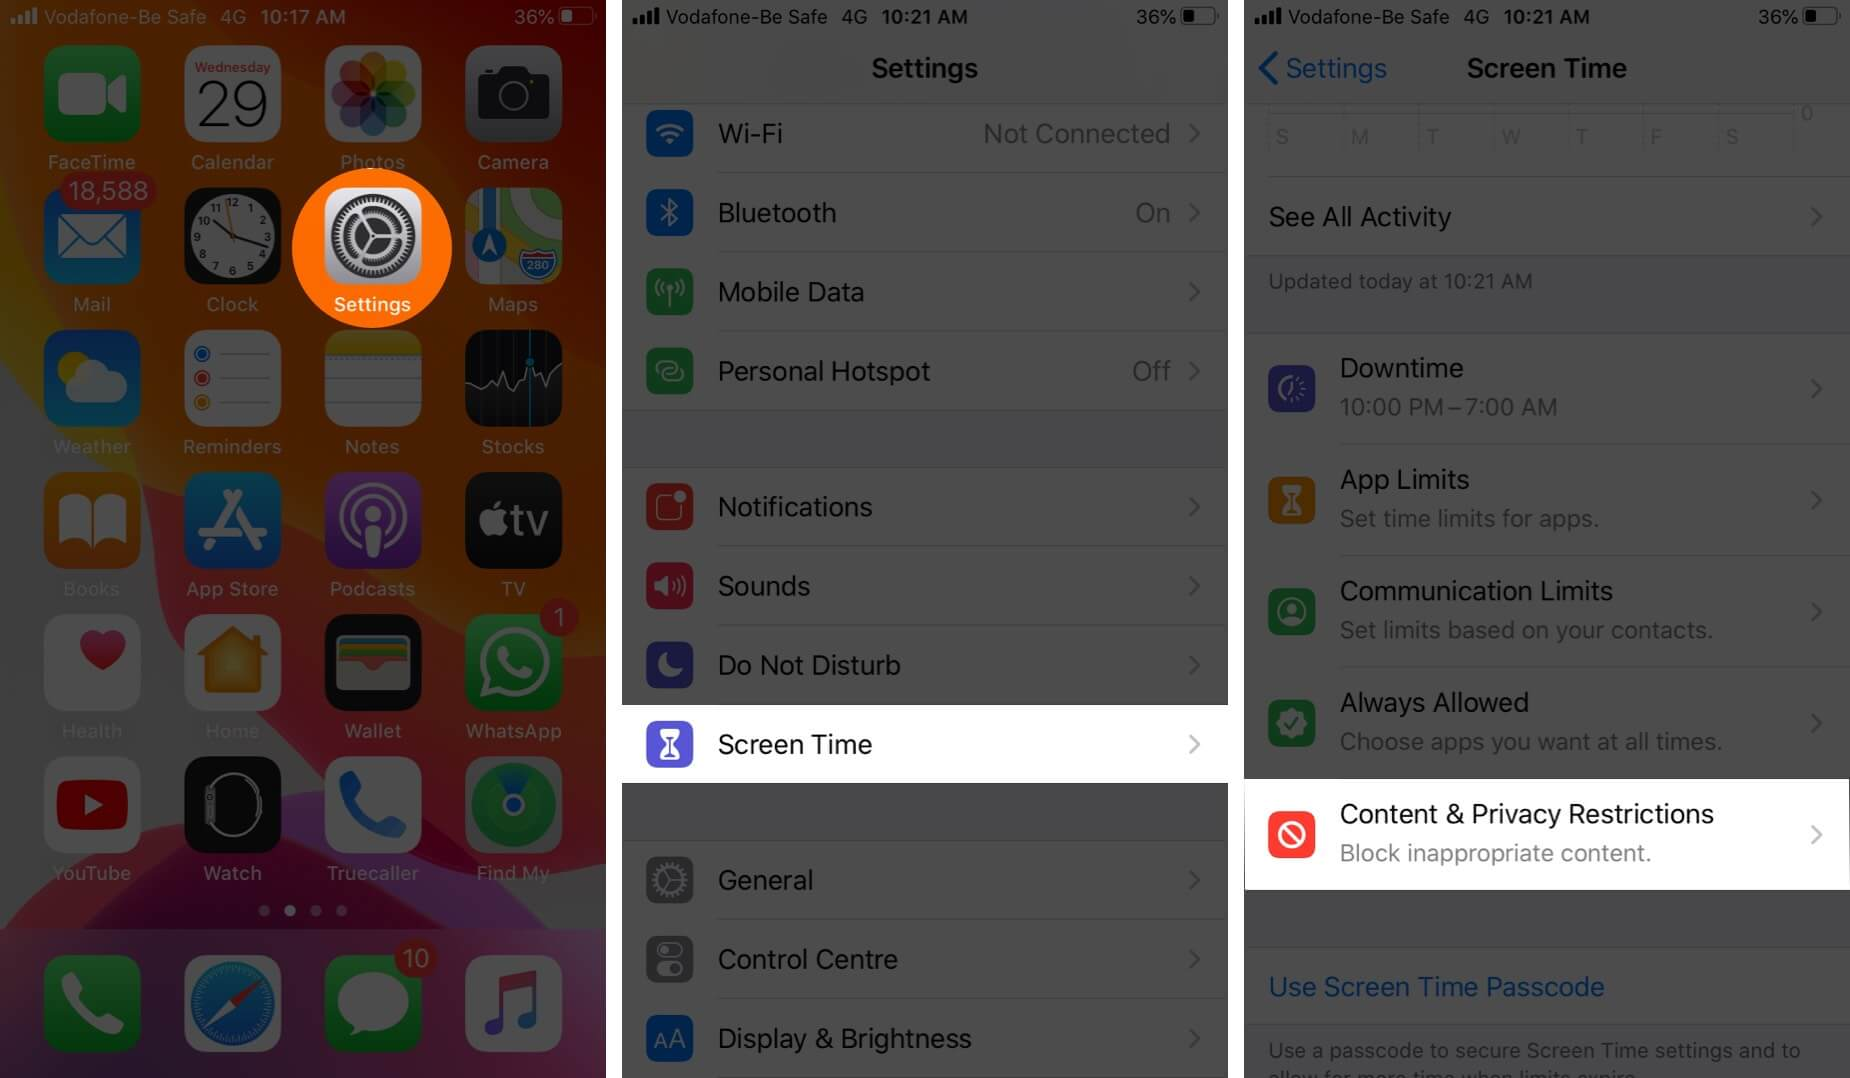 Open Settings Tap on Screen Time and Then Tap on Content & Privacy Restrictions